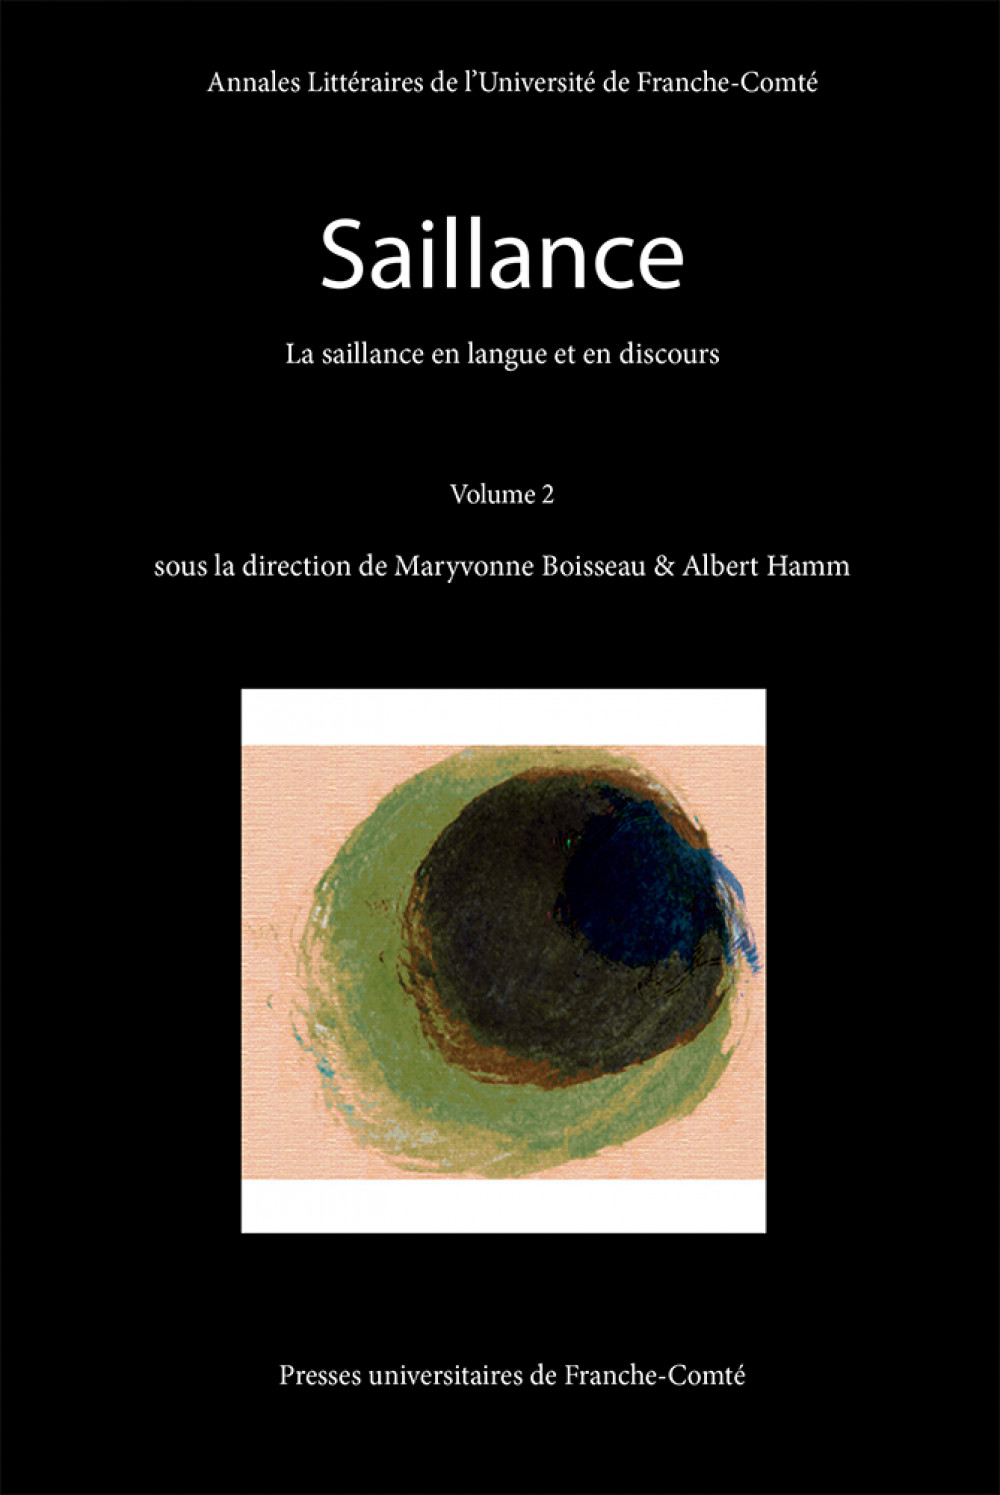 Saillance volume 2